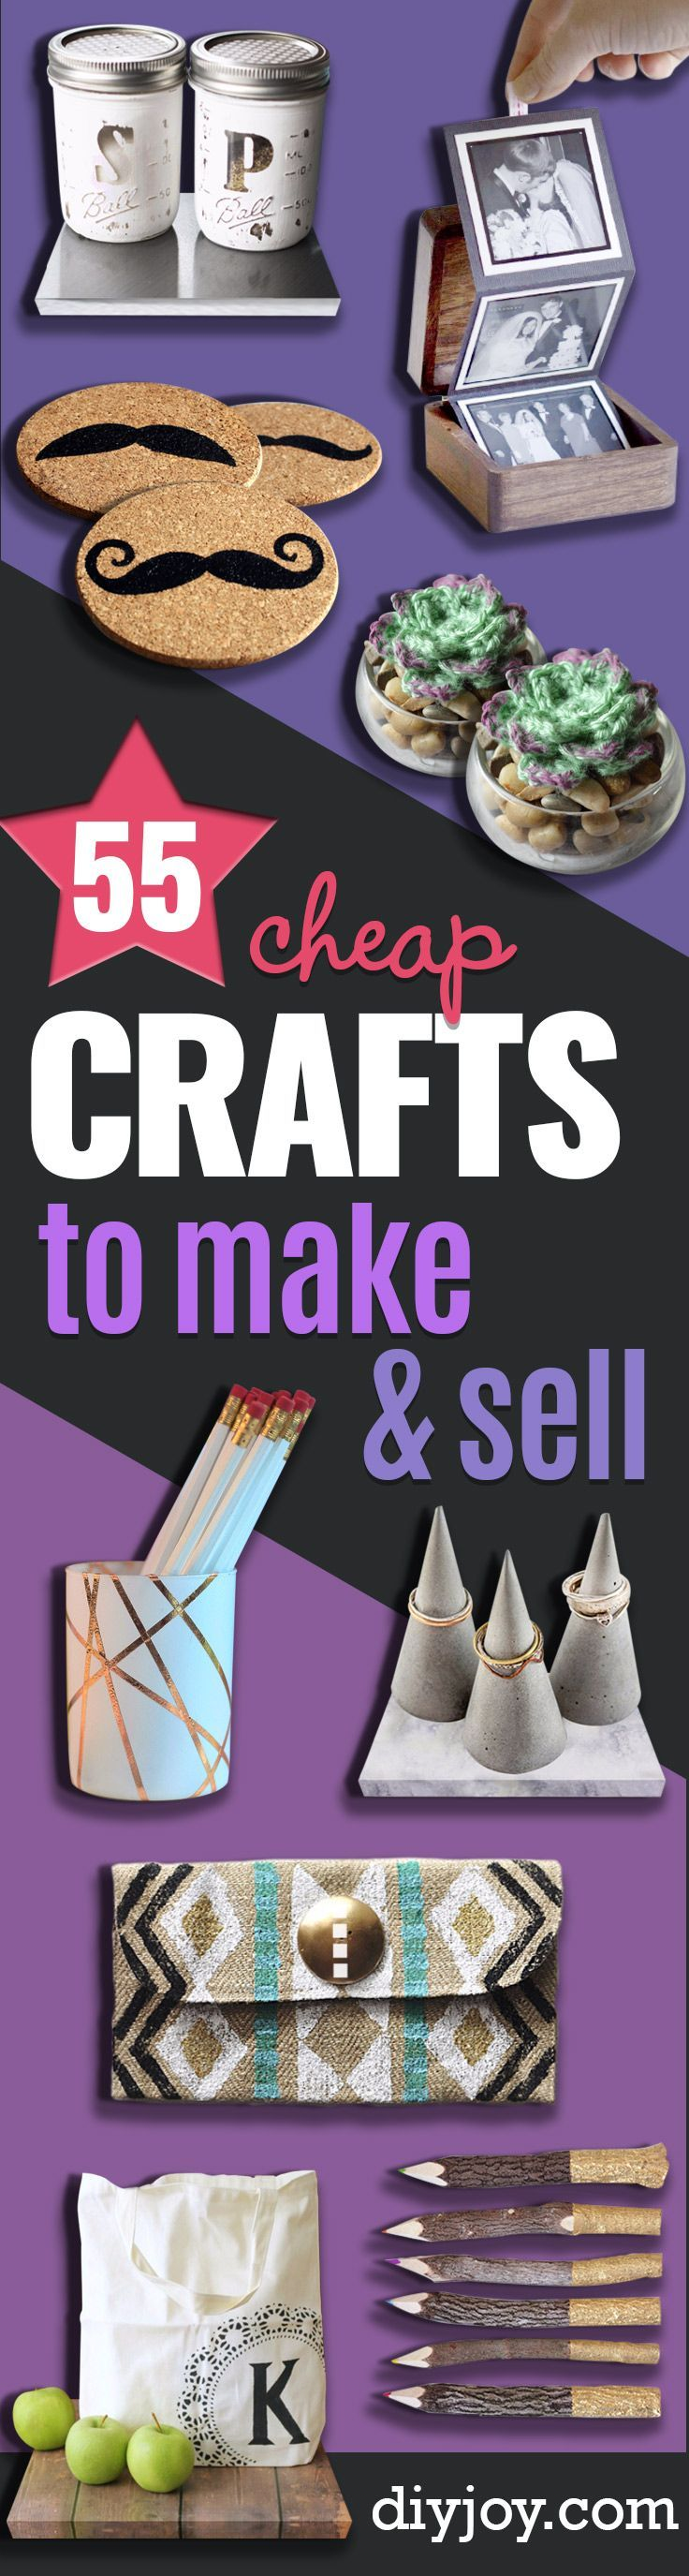 best 25 crafts to sell ideas on pinterest diy projects